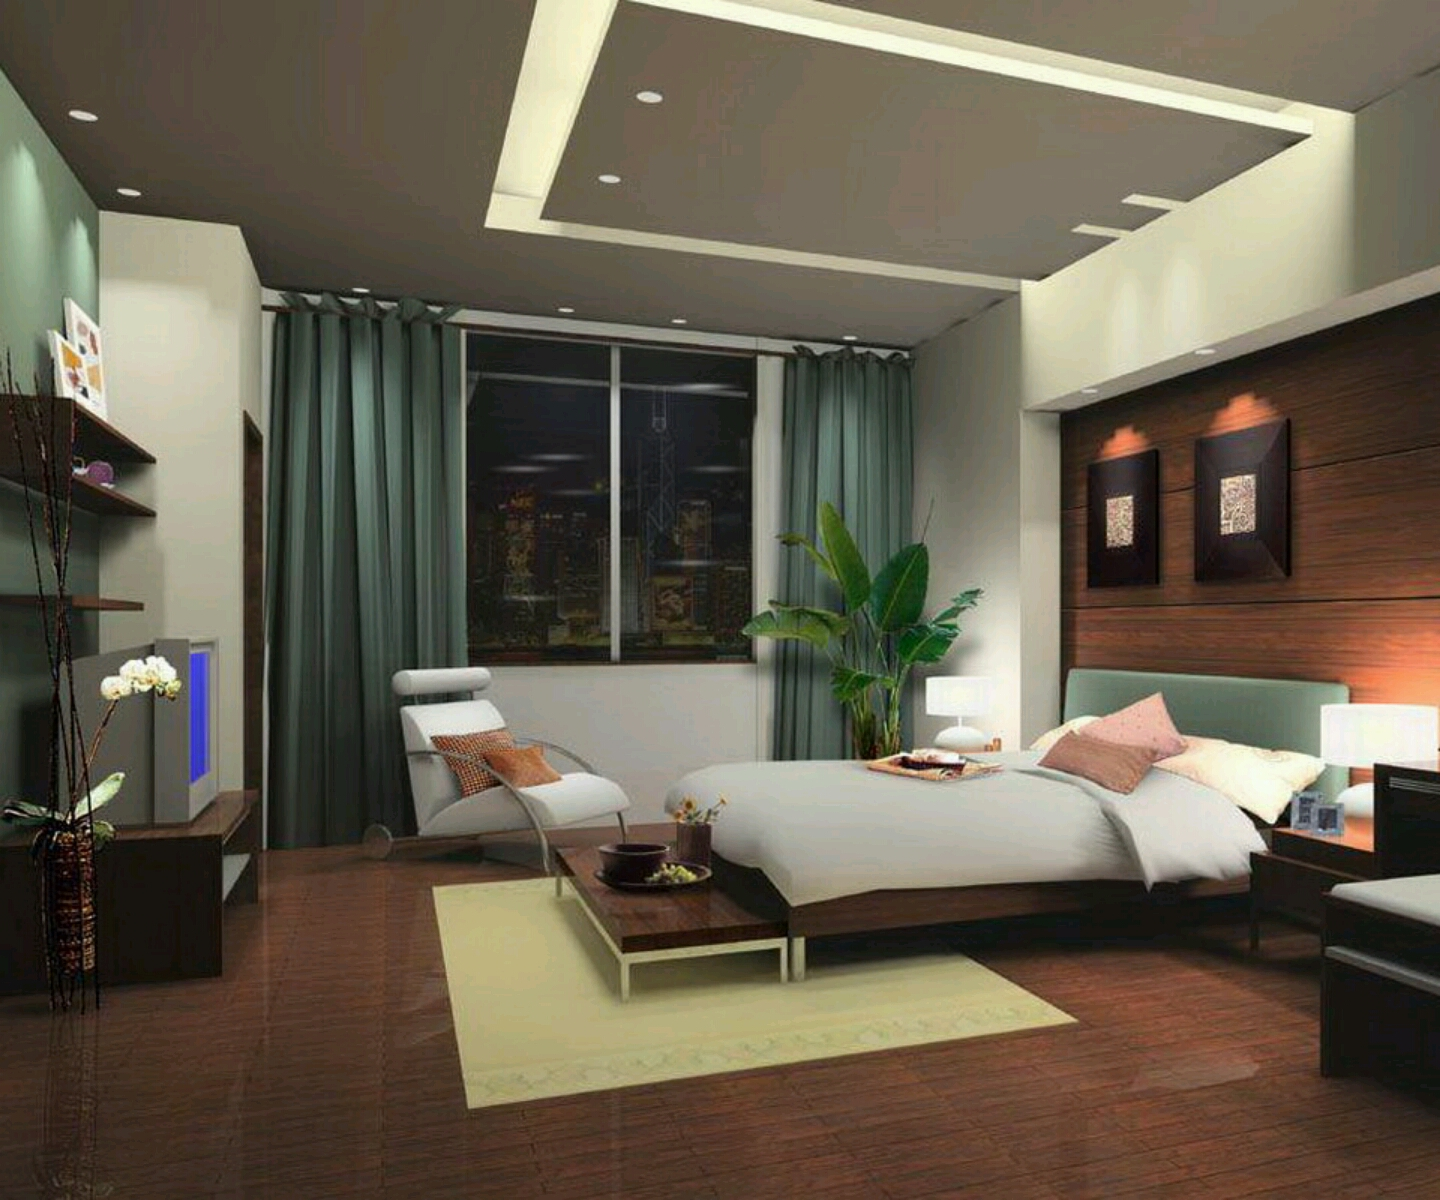 New home designs latest modern bedrooms designs best ideas for New bedroom design ideas